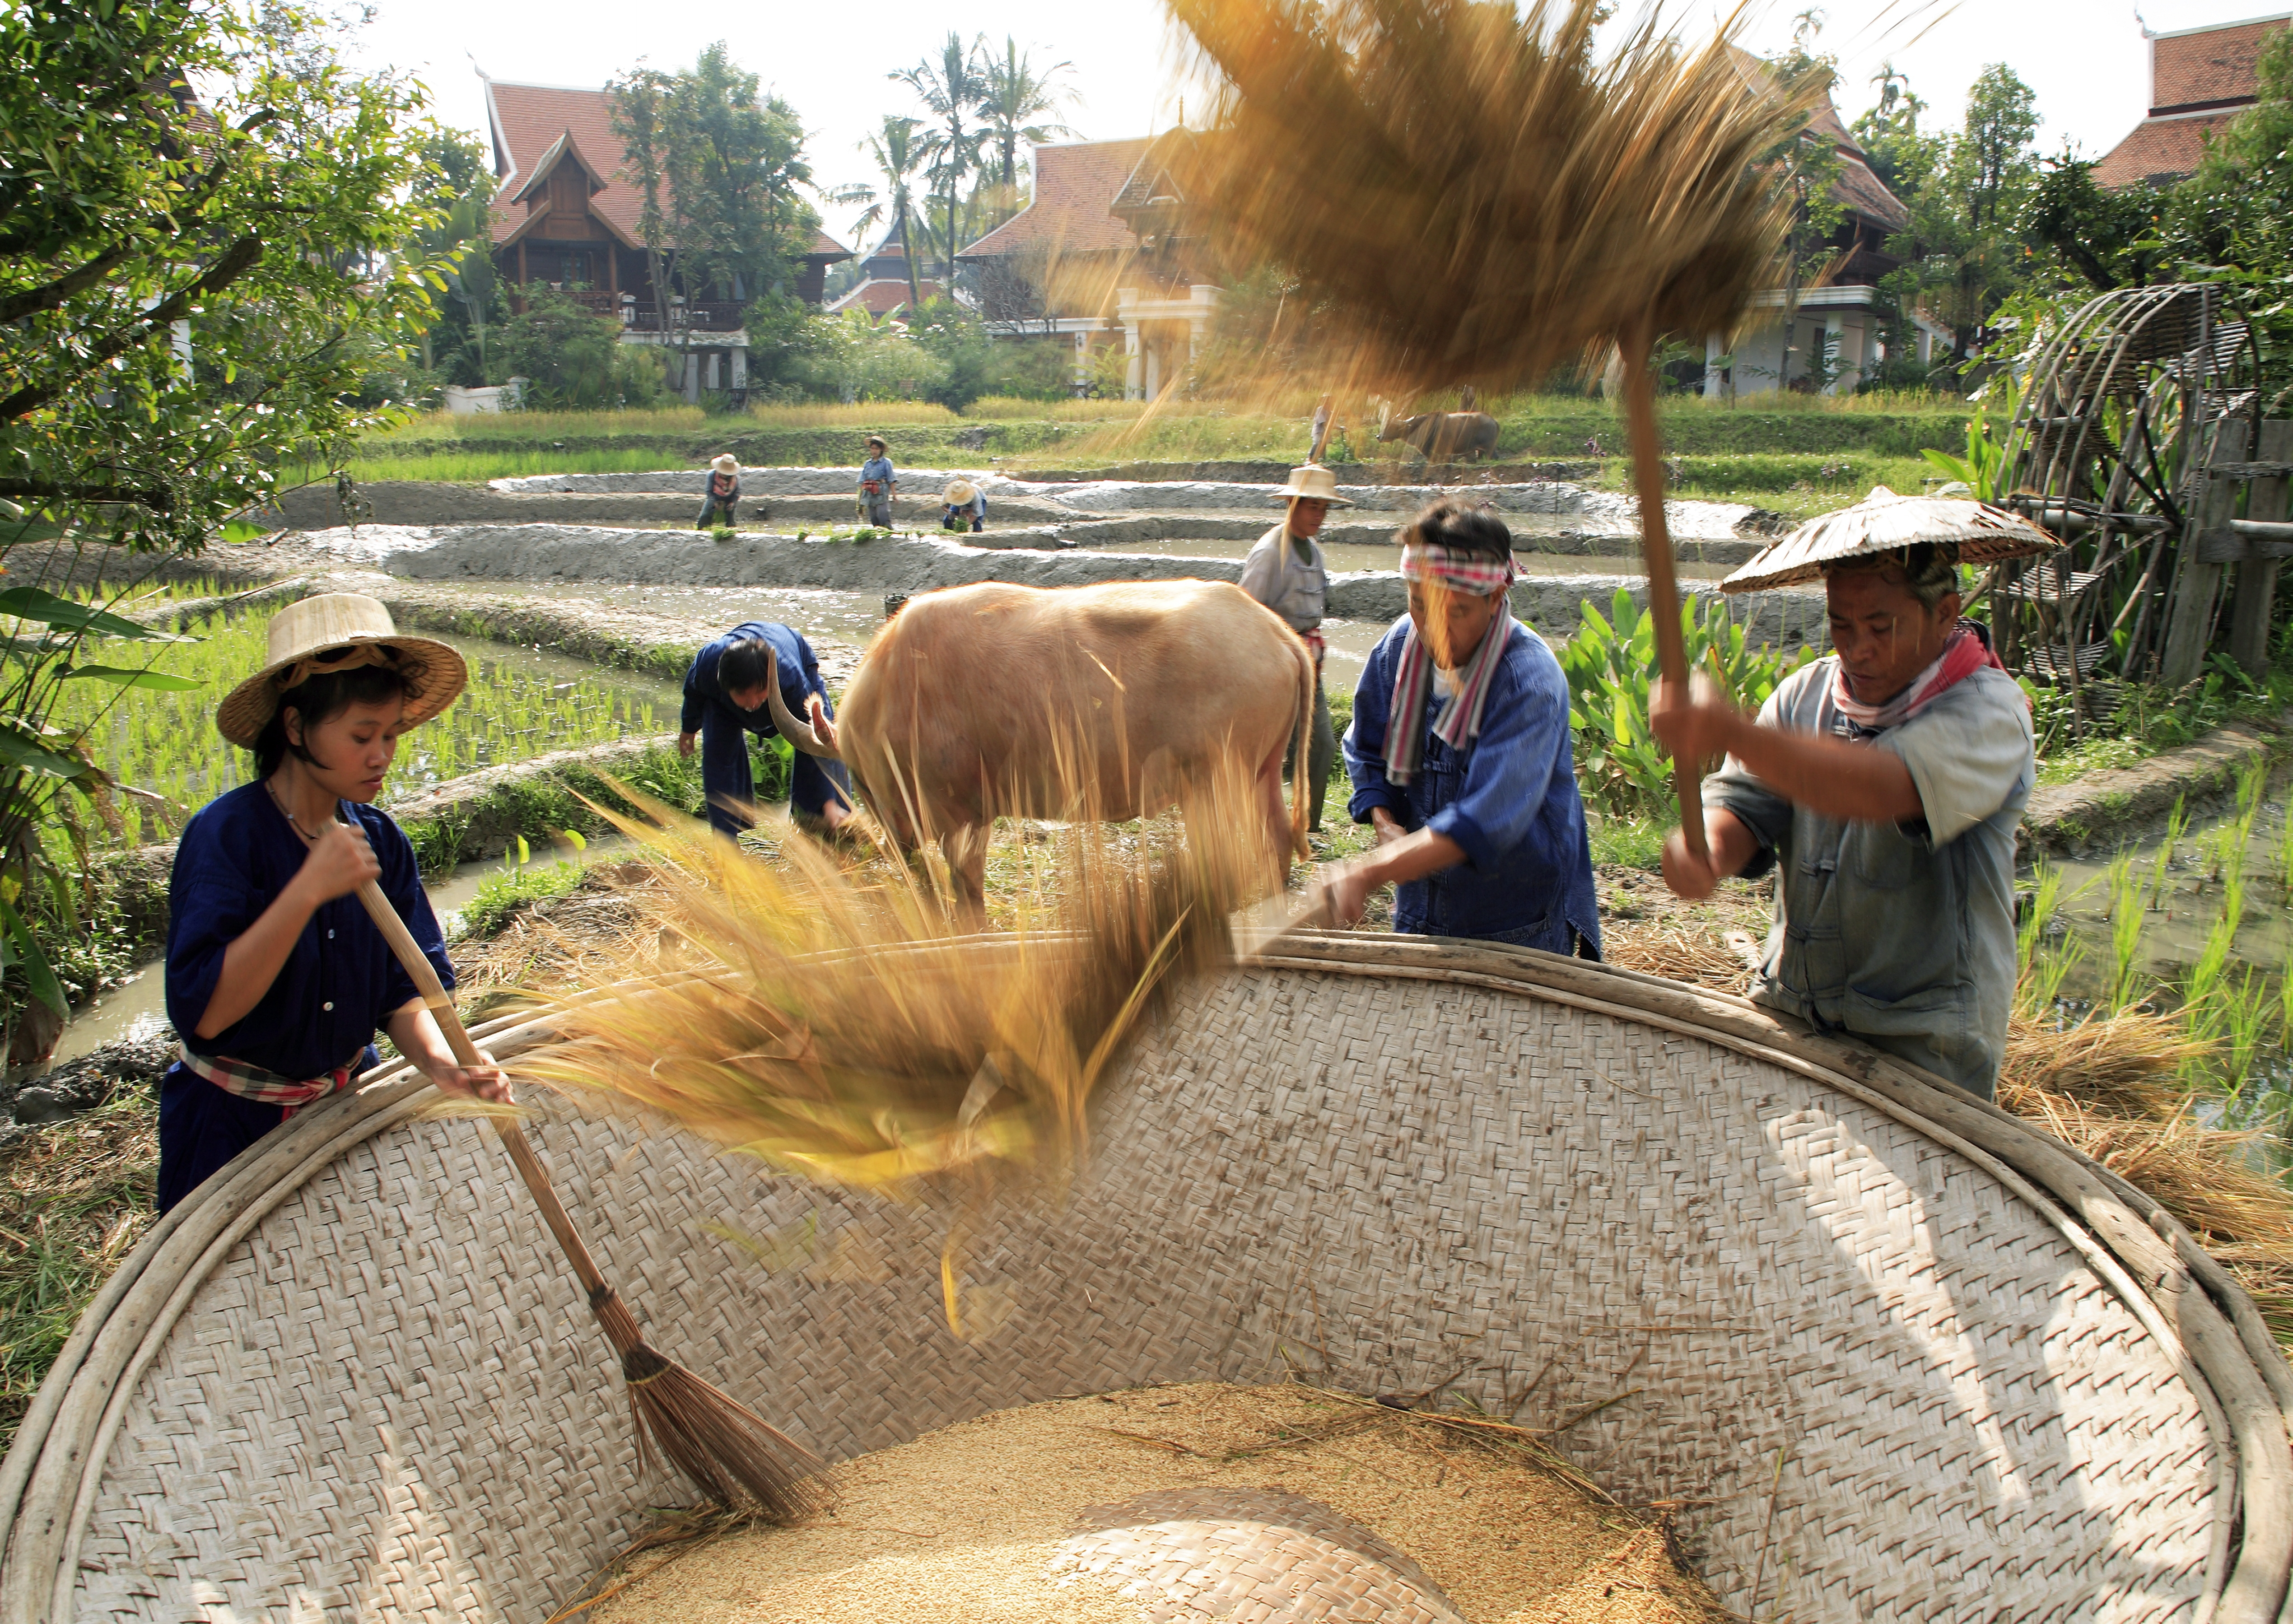 Farmers threshing, or separating rice seeds from stalks and husks (chaff), in Thailand Photo © Luca Tettoni/Robert Harding World Imagery/Corbis